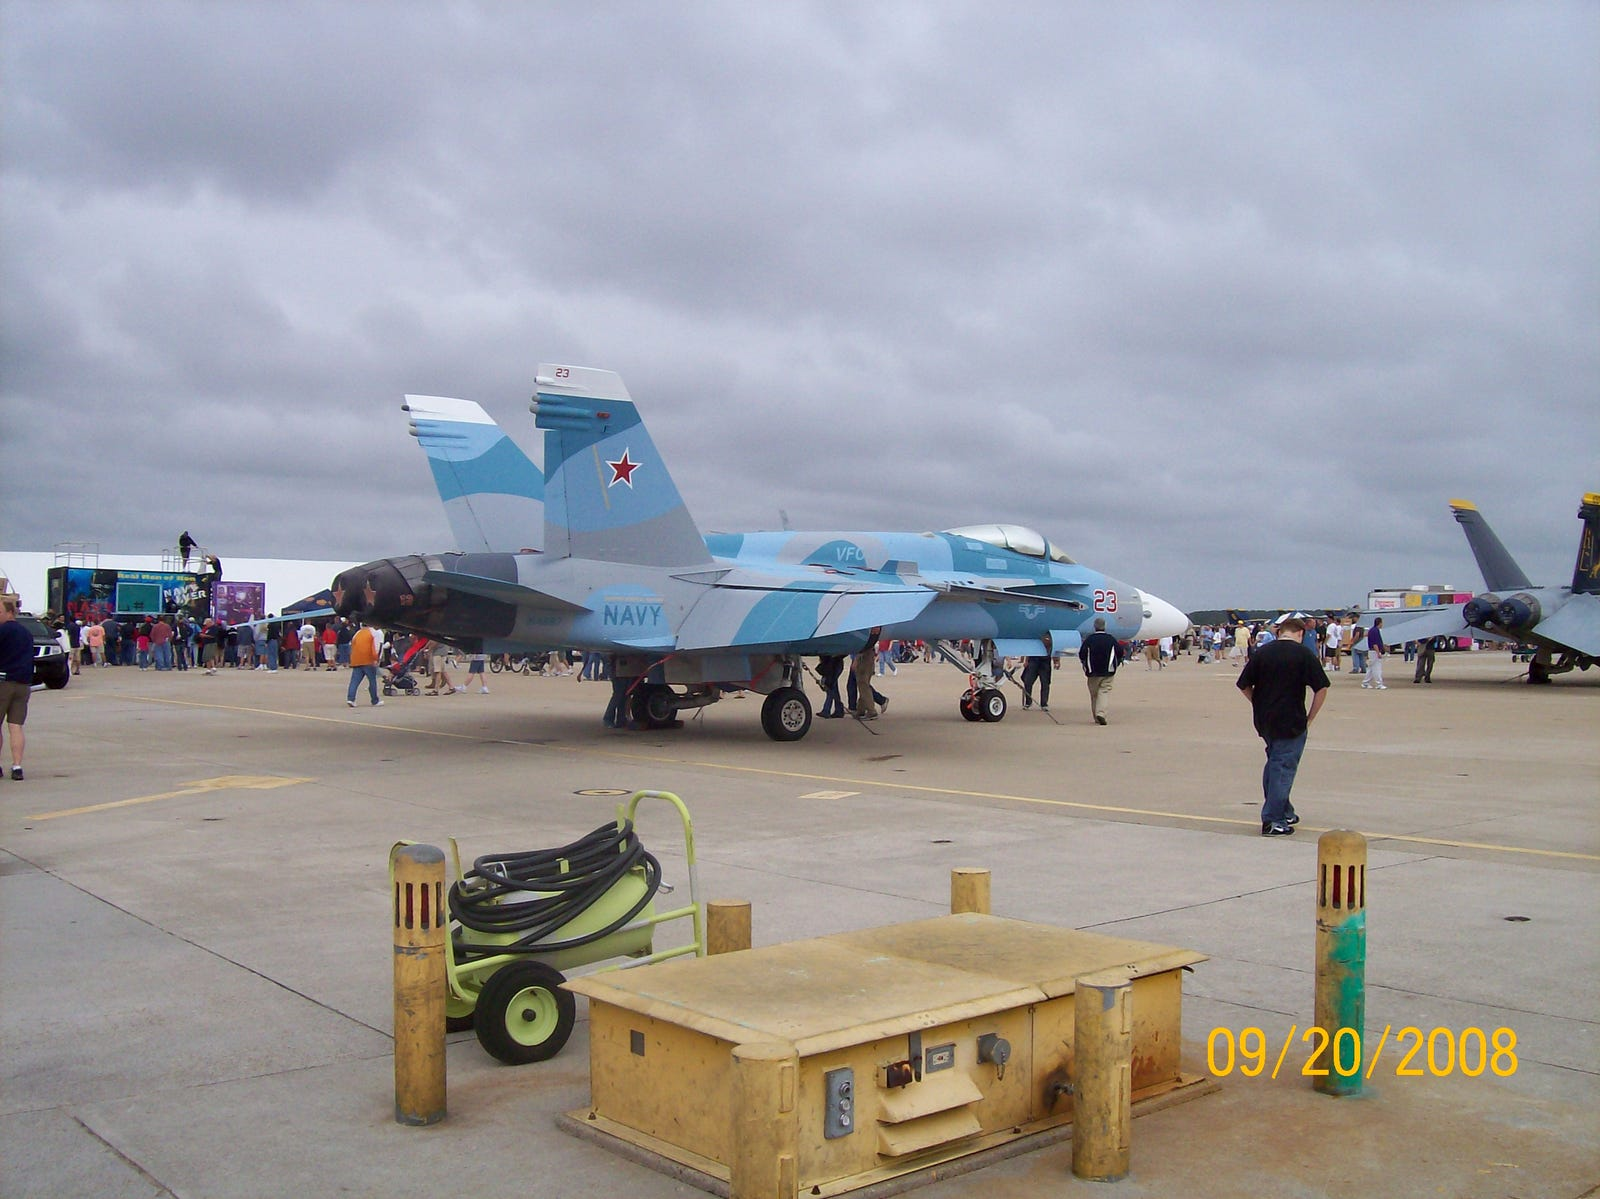 There were, unsurprisingly, a lot of F/A-18s. This F/A-18C is painted to look like an Su-27.